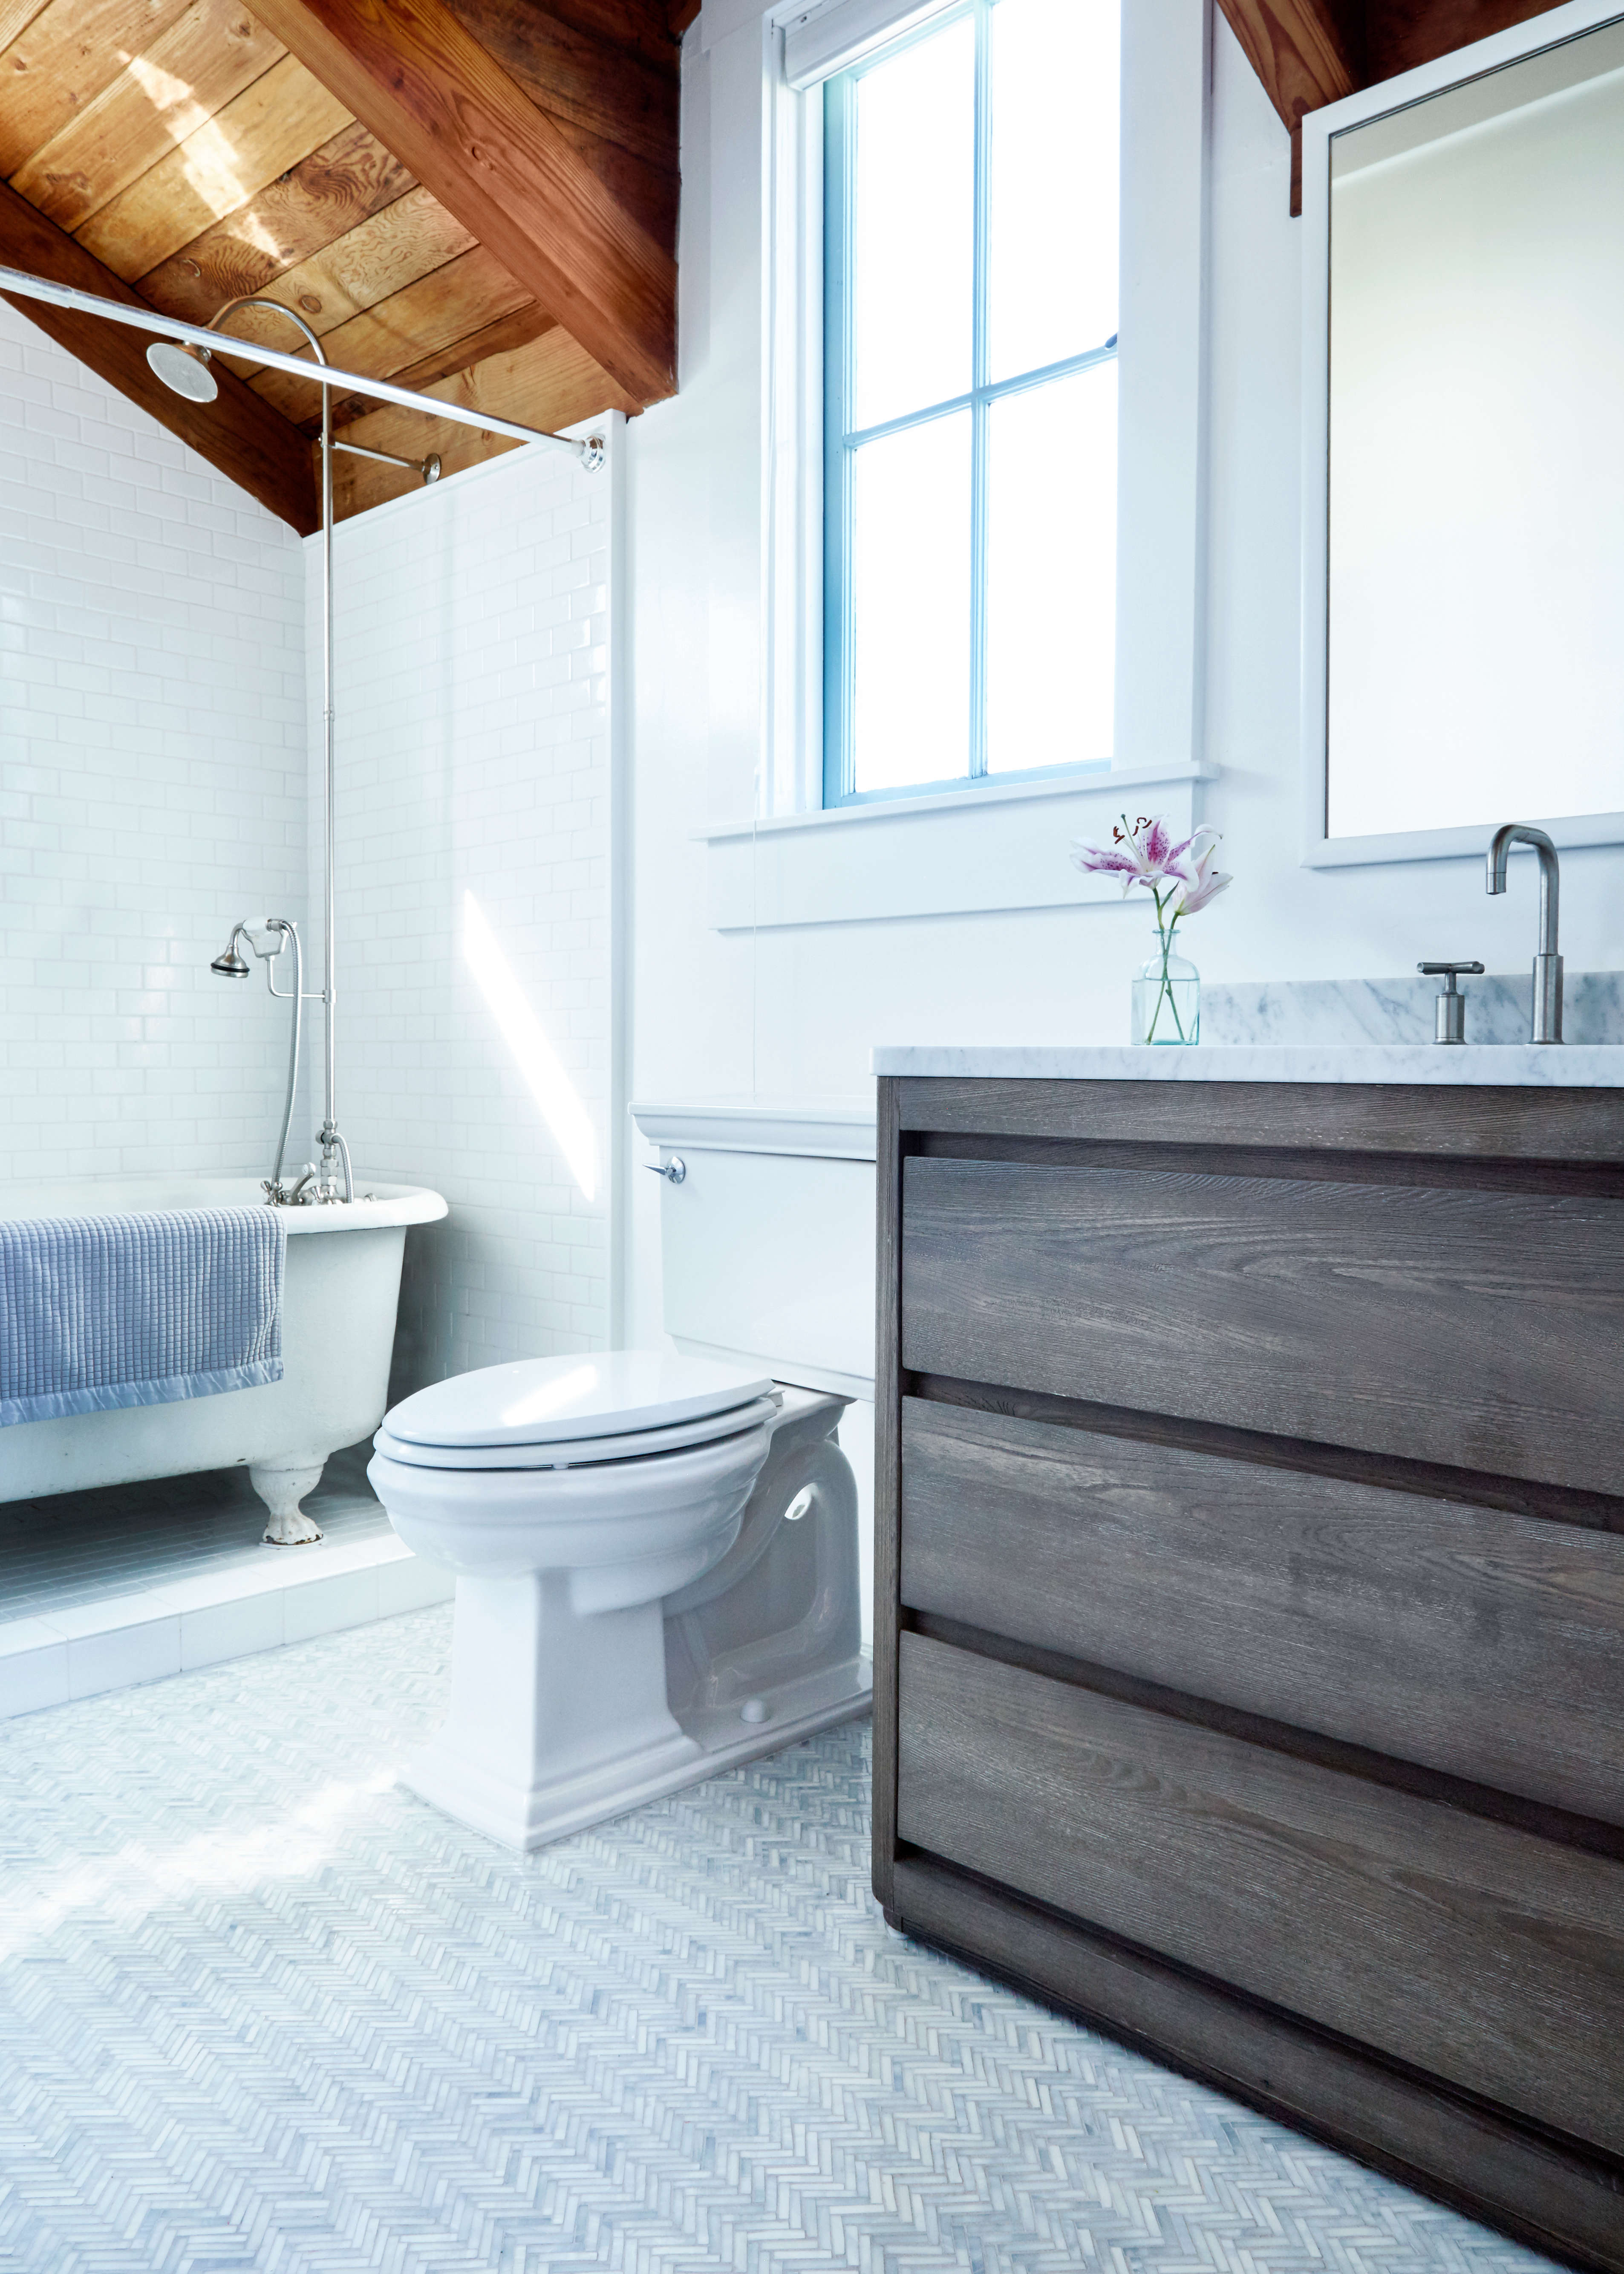 Myers does most of the tile work in her studio in Inverness. But before that could beginthe couple had their trusted contractor, Sallie Lang of Bliss Design Build, get the room refreshed and ready. That included installingsubway tile (Daltile in Arctic White) around the existing clawfoot tub as well as a new watering can shower head and hand faucet in brushed nickel (by Randolph Morris) and painting the walls Benjamin Moore Super White.